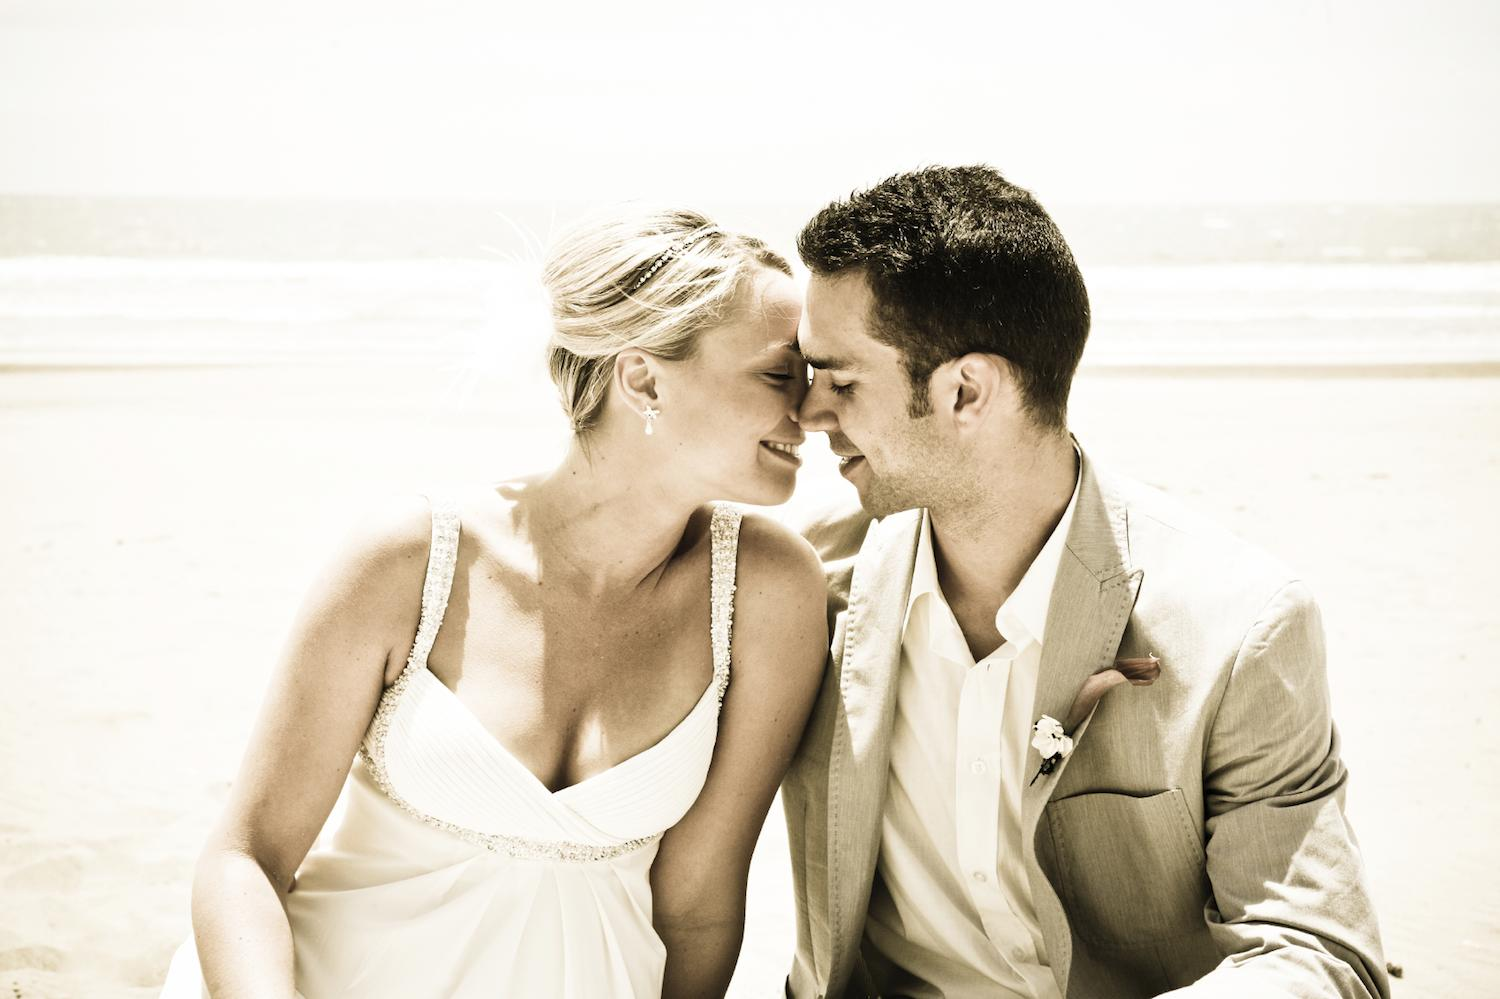 Here is your chance to start your wedding planning with an all-access book to the best venues, wedding photographers, reception sites and more that the area has to offer. Written by the area's most sought after wedding planner, Cocktails & Details, you'll have tips, must-know information and guides on having the most beautiful wedding in St. Simons and Jekyll Island.